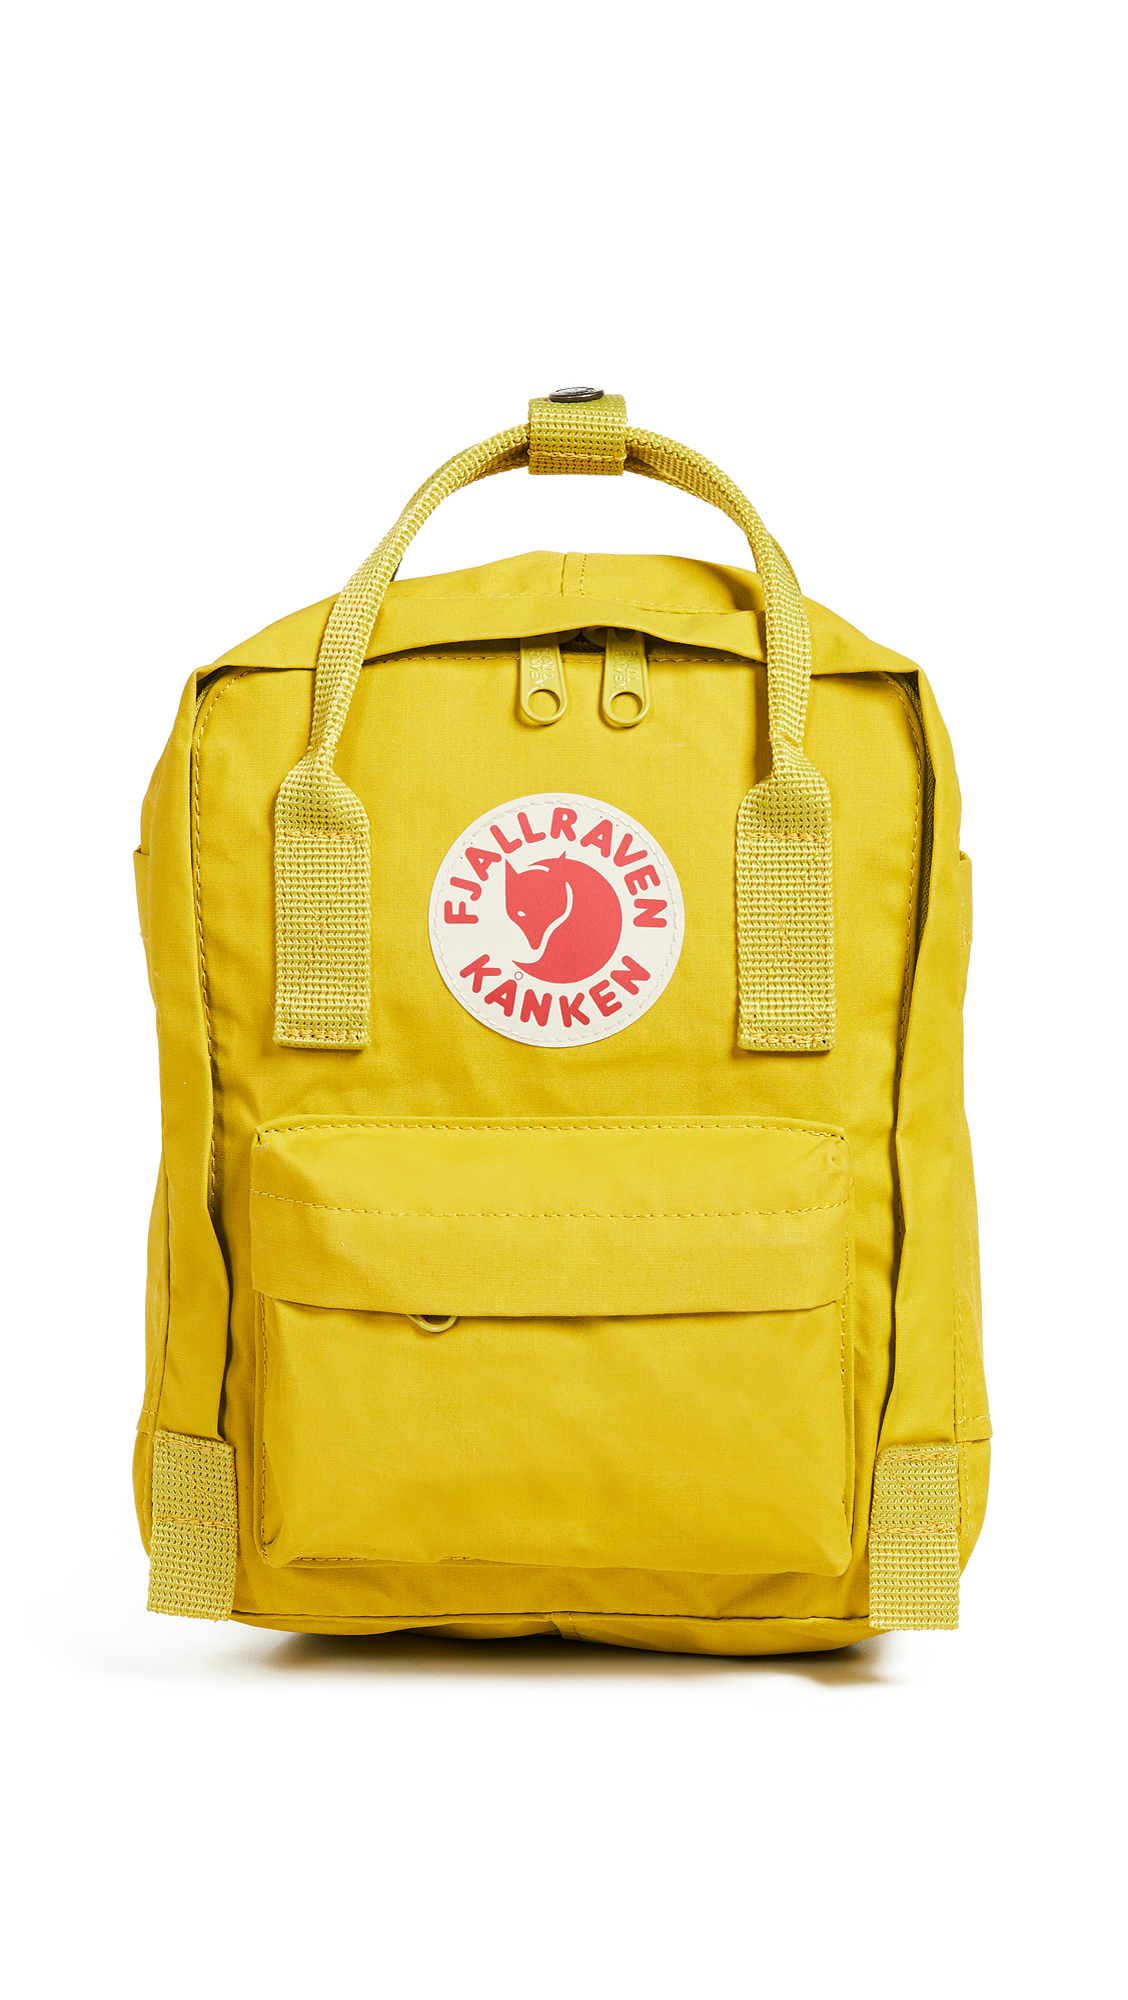 FJALL RAVEN Kanken Mini Backpack in Birch Green